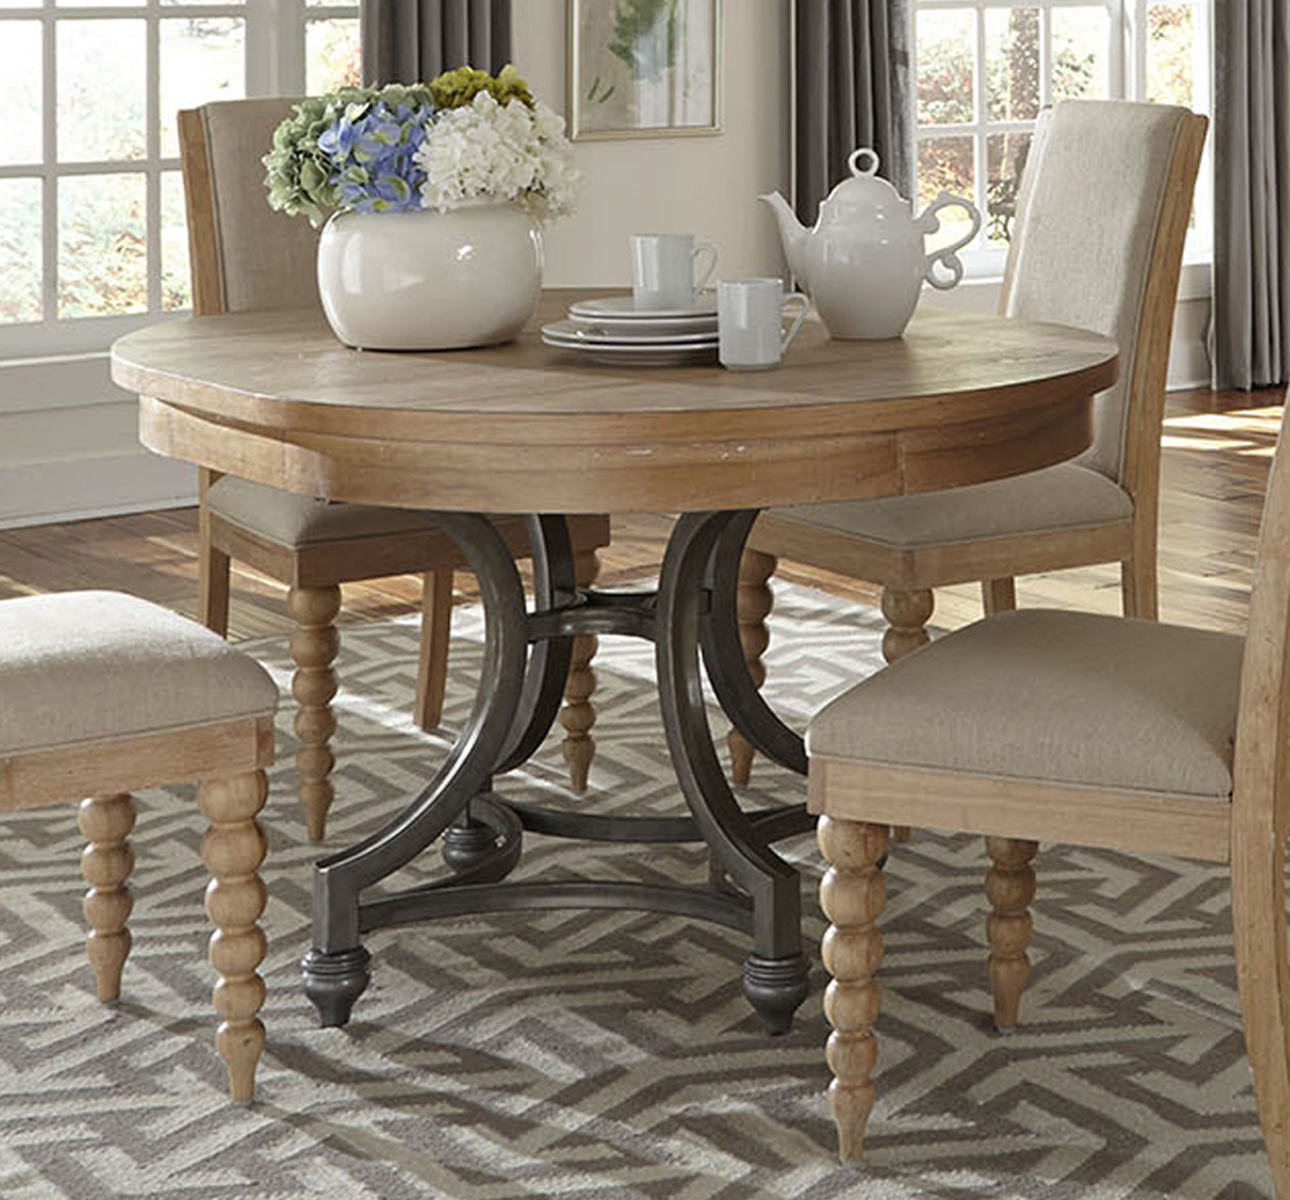 Dining Tables Clearance: Liberty Furniture Harbor View Round Dining Table In Sand